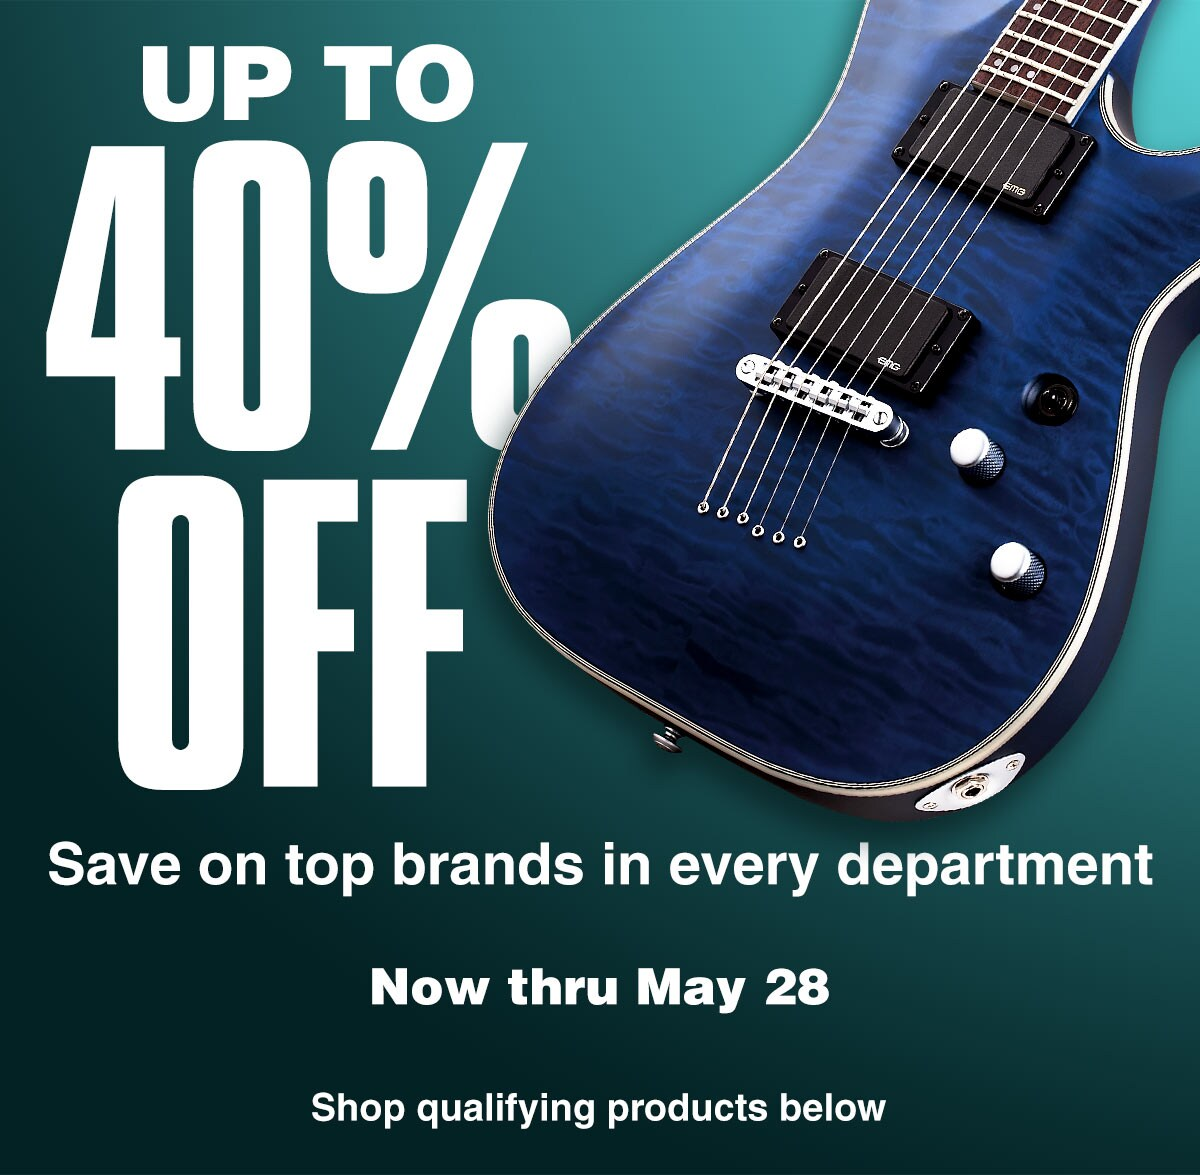 Up to 40 percent off. Save on top brands in every department. Now thru May 28. Shop qualifying products below.